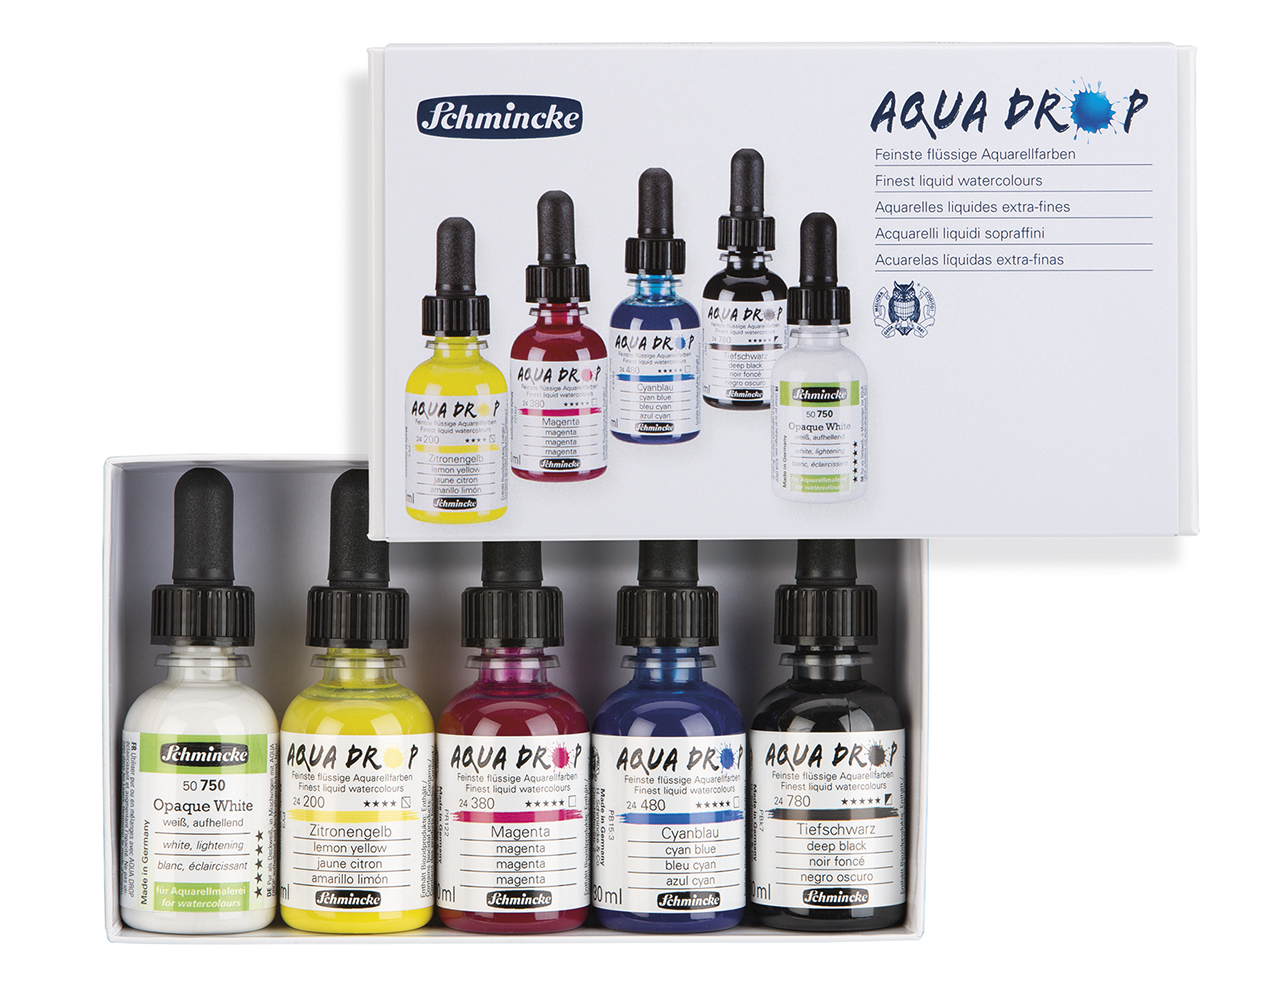 Aquarellfarbe Schmincke Aqua Drop 5x30ml